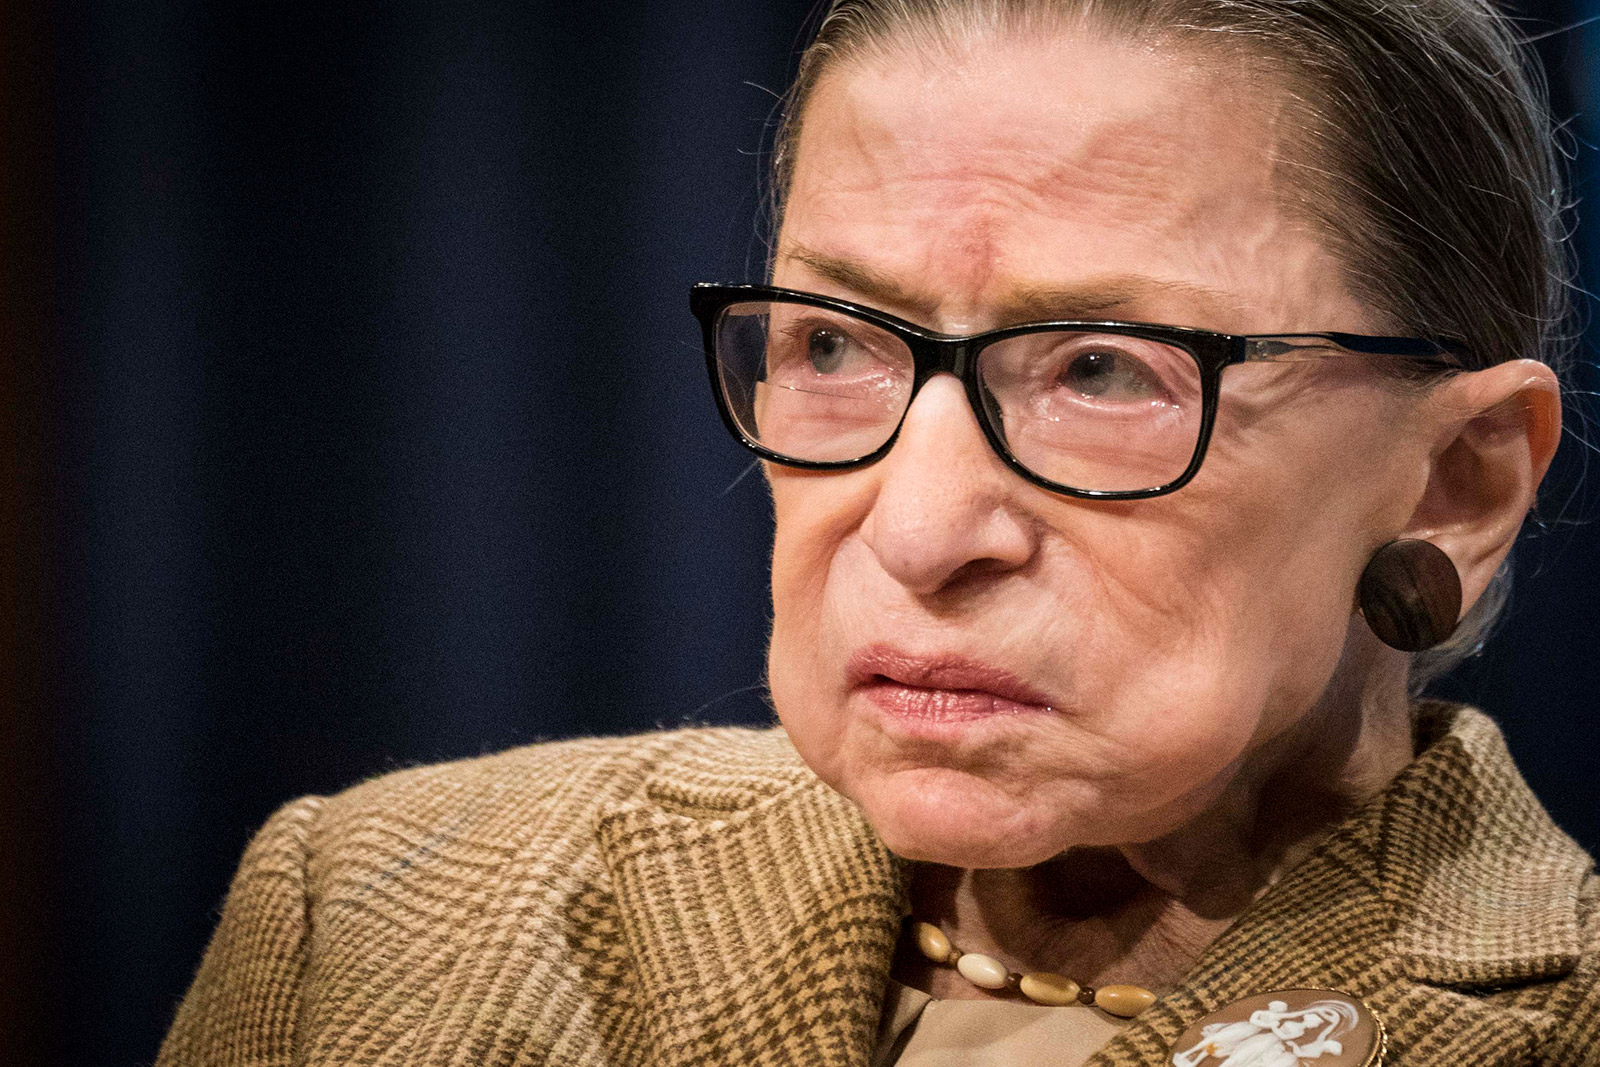 Justice Ruth Bader Ginsburg participates in a discussion at the Georgetown University Law Center on February 10.